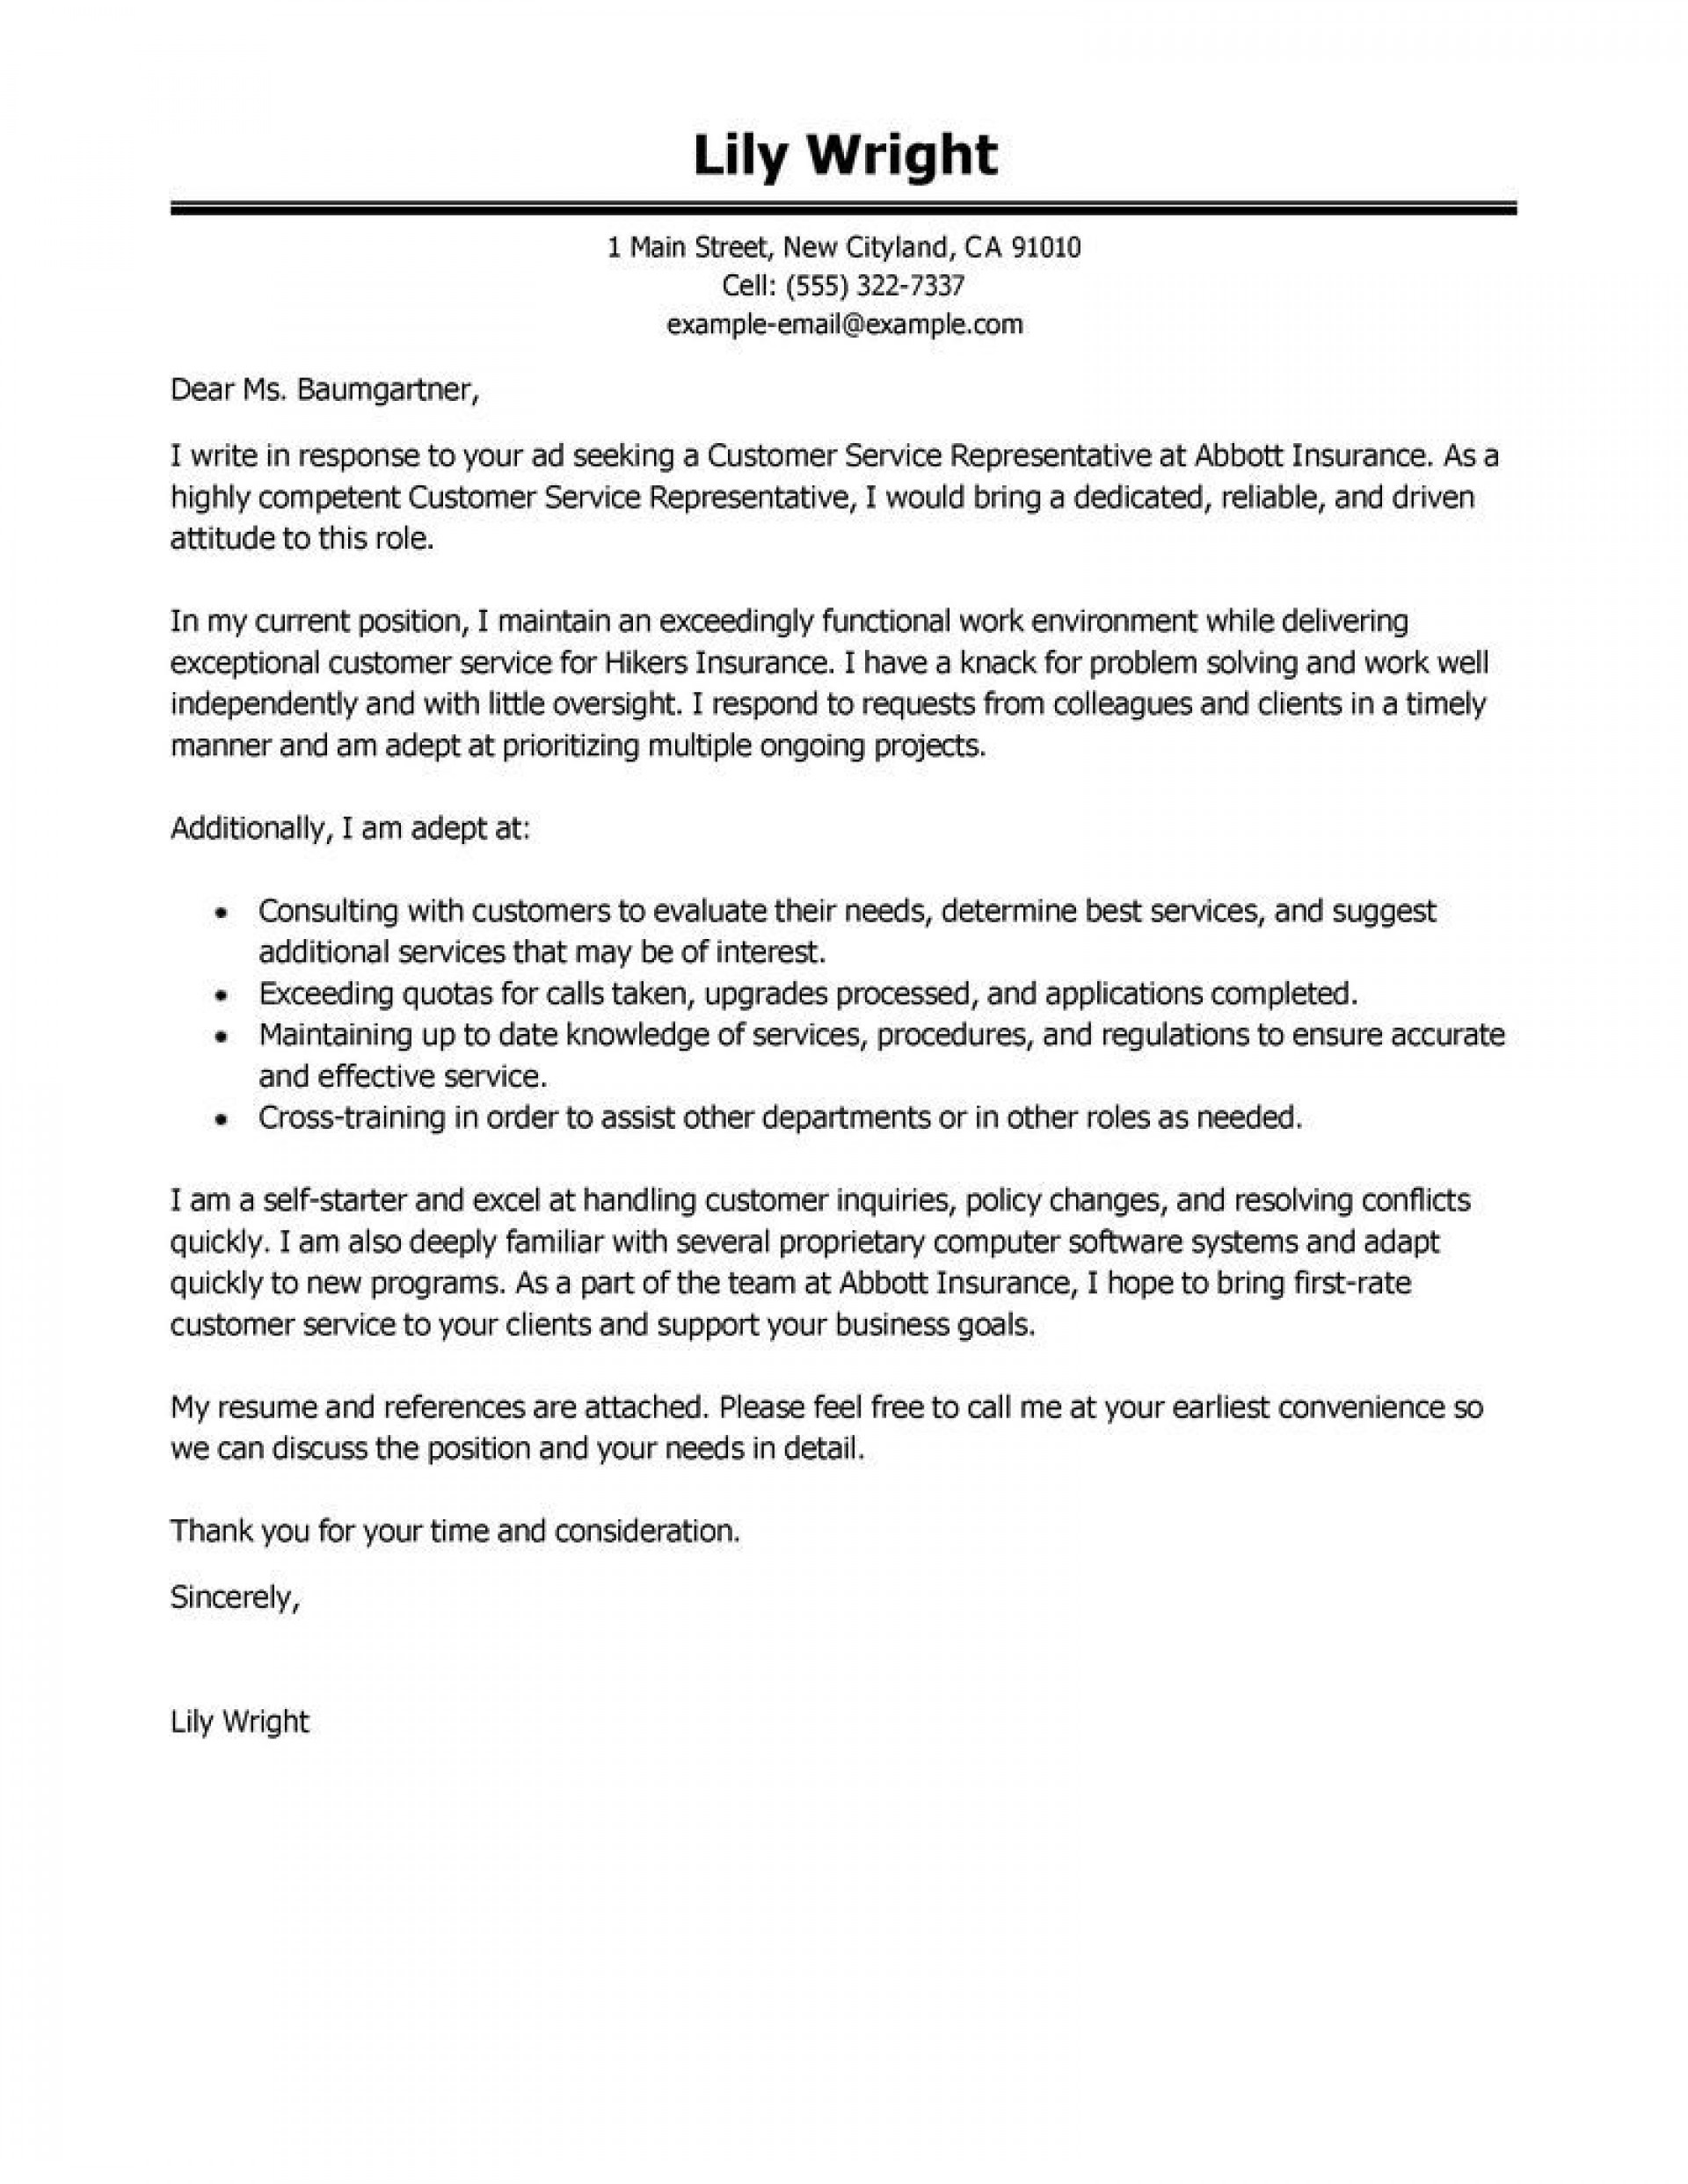 003 Essay Example Being Leader 2080959786 Imposing A Great College Qualities Of Pdf 1920